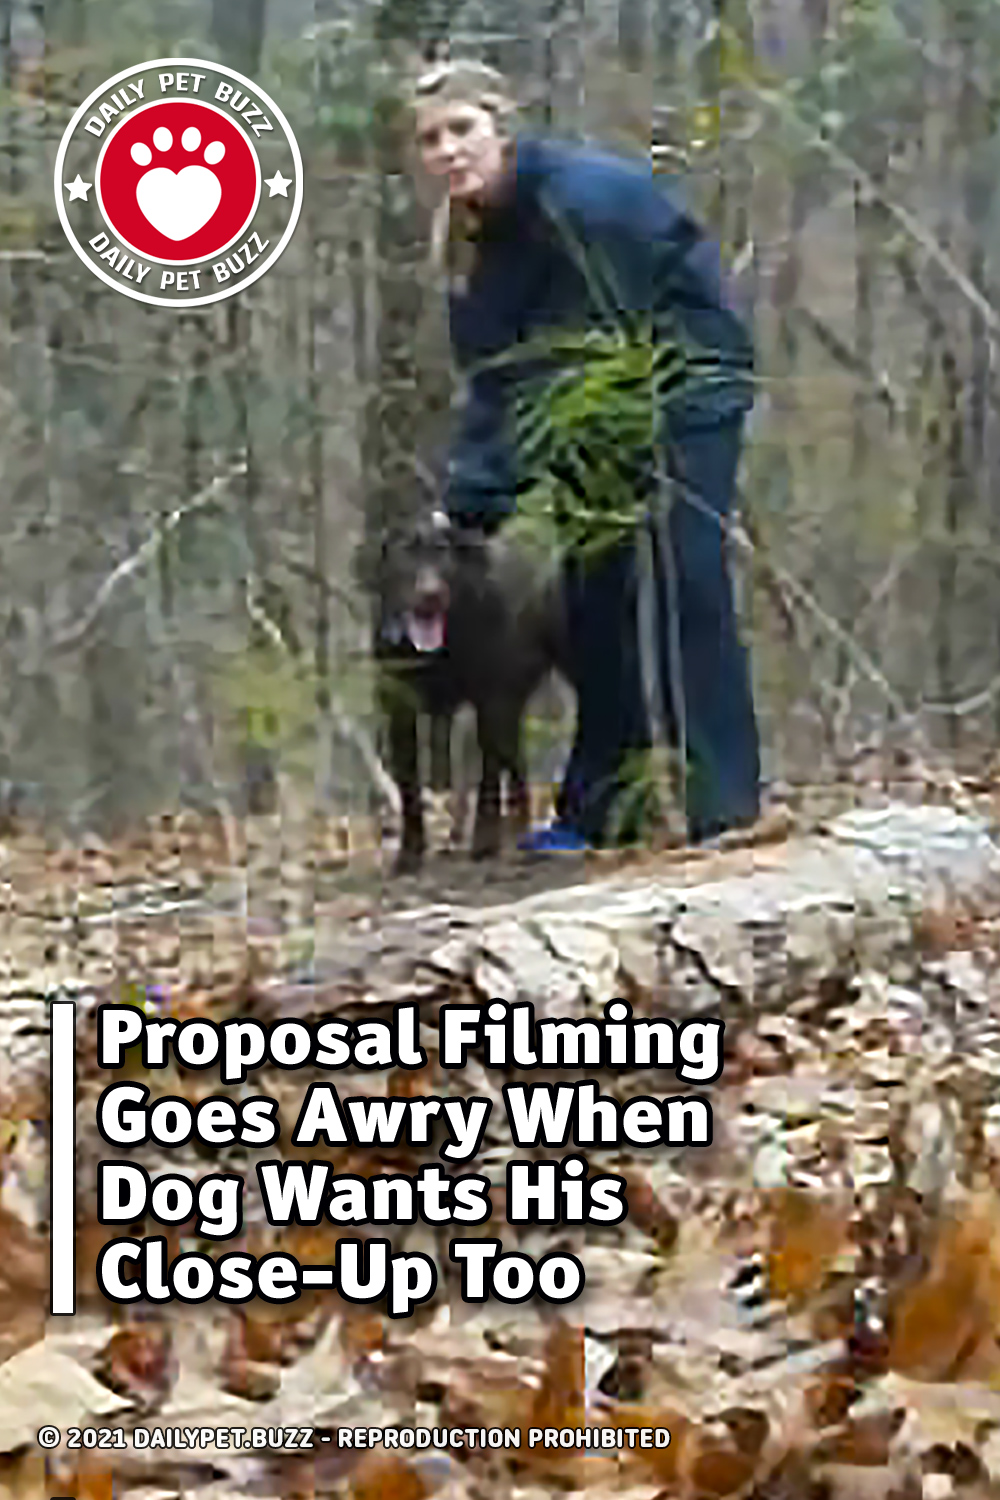 Proposal Filming Goes Awry When Dog Wants His Close-Up Too